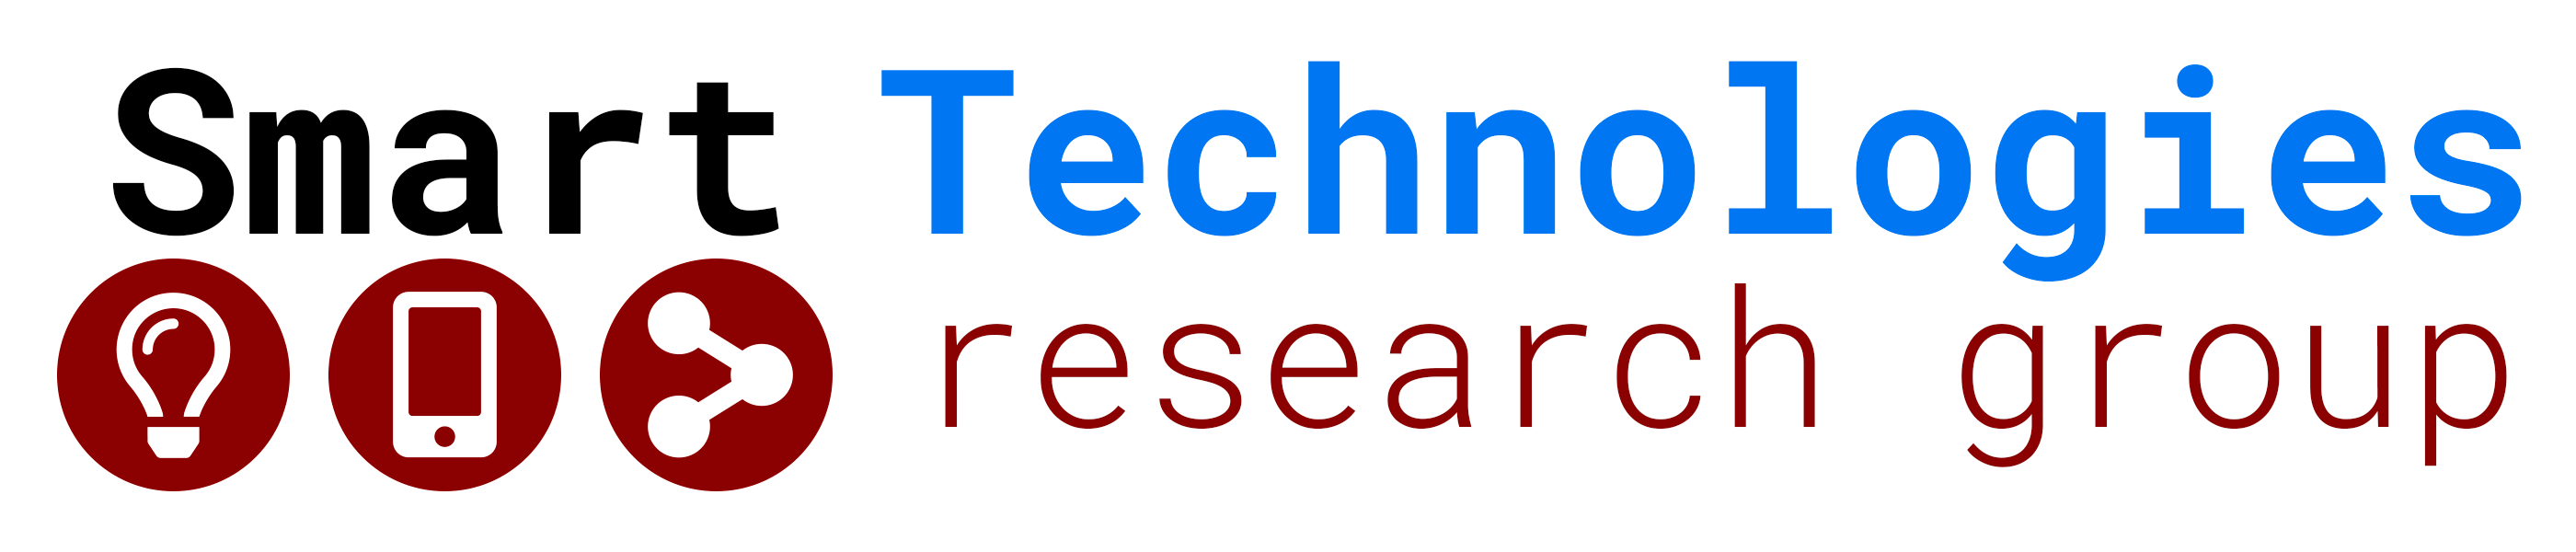 Smart Technologies research group